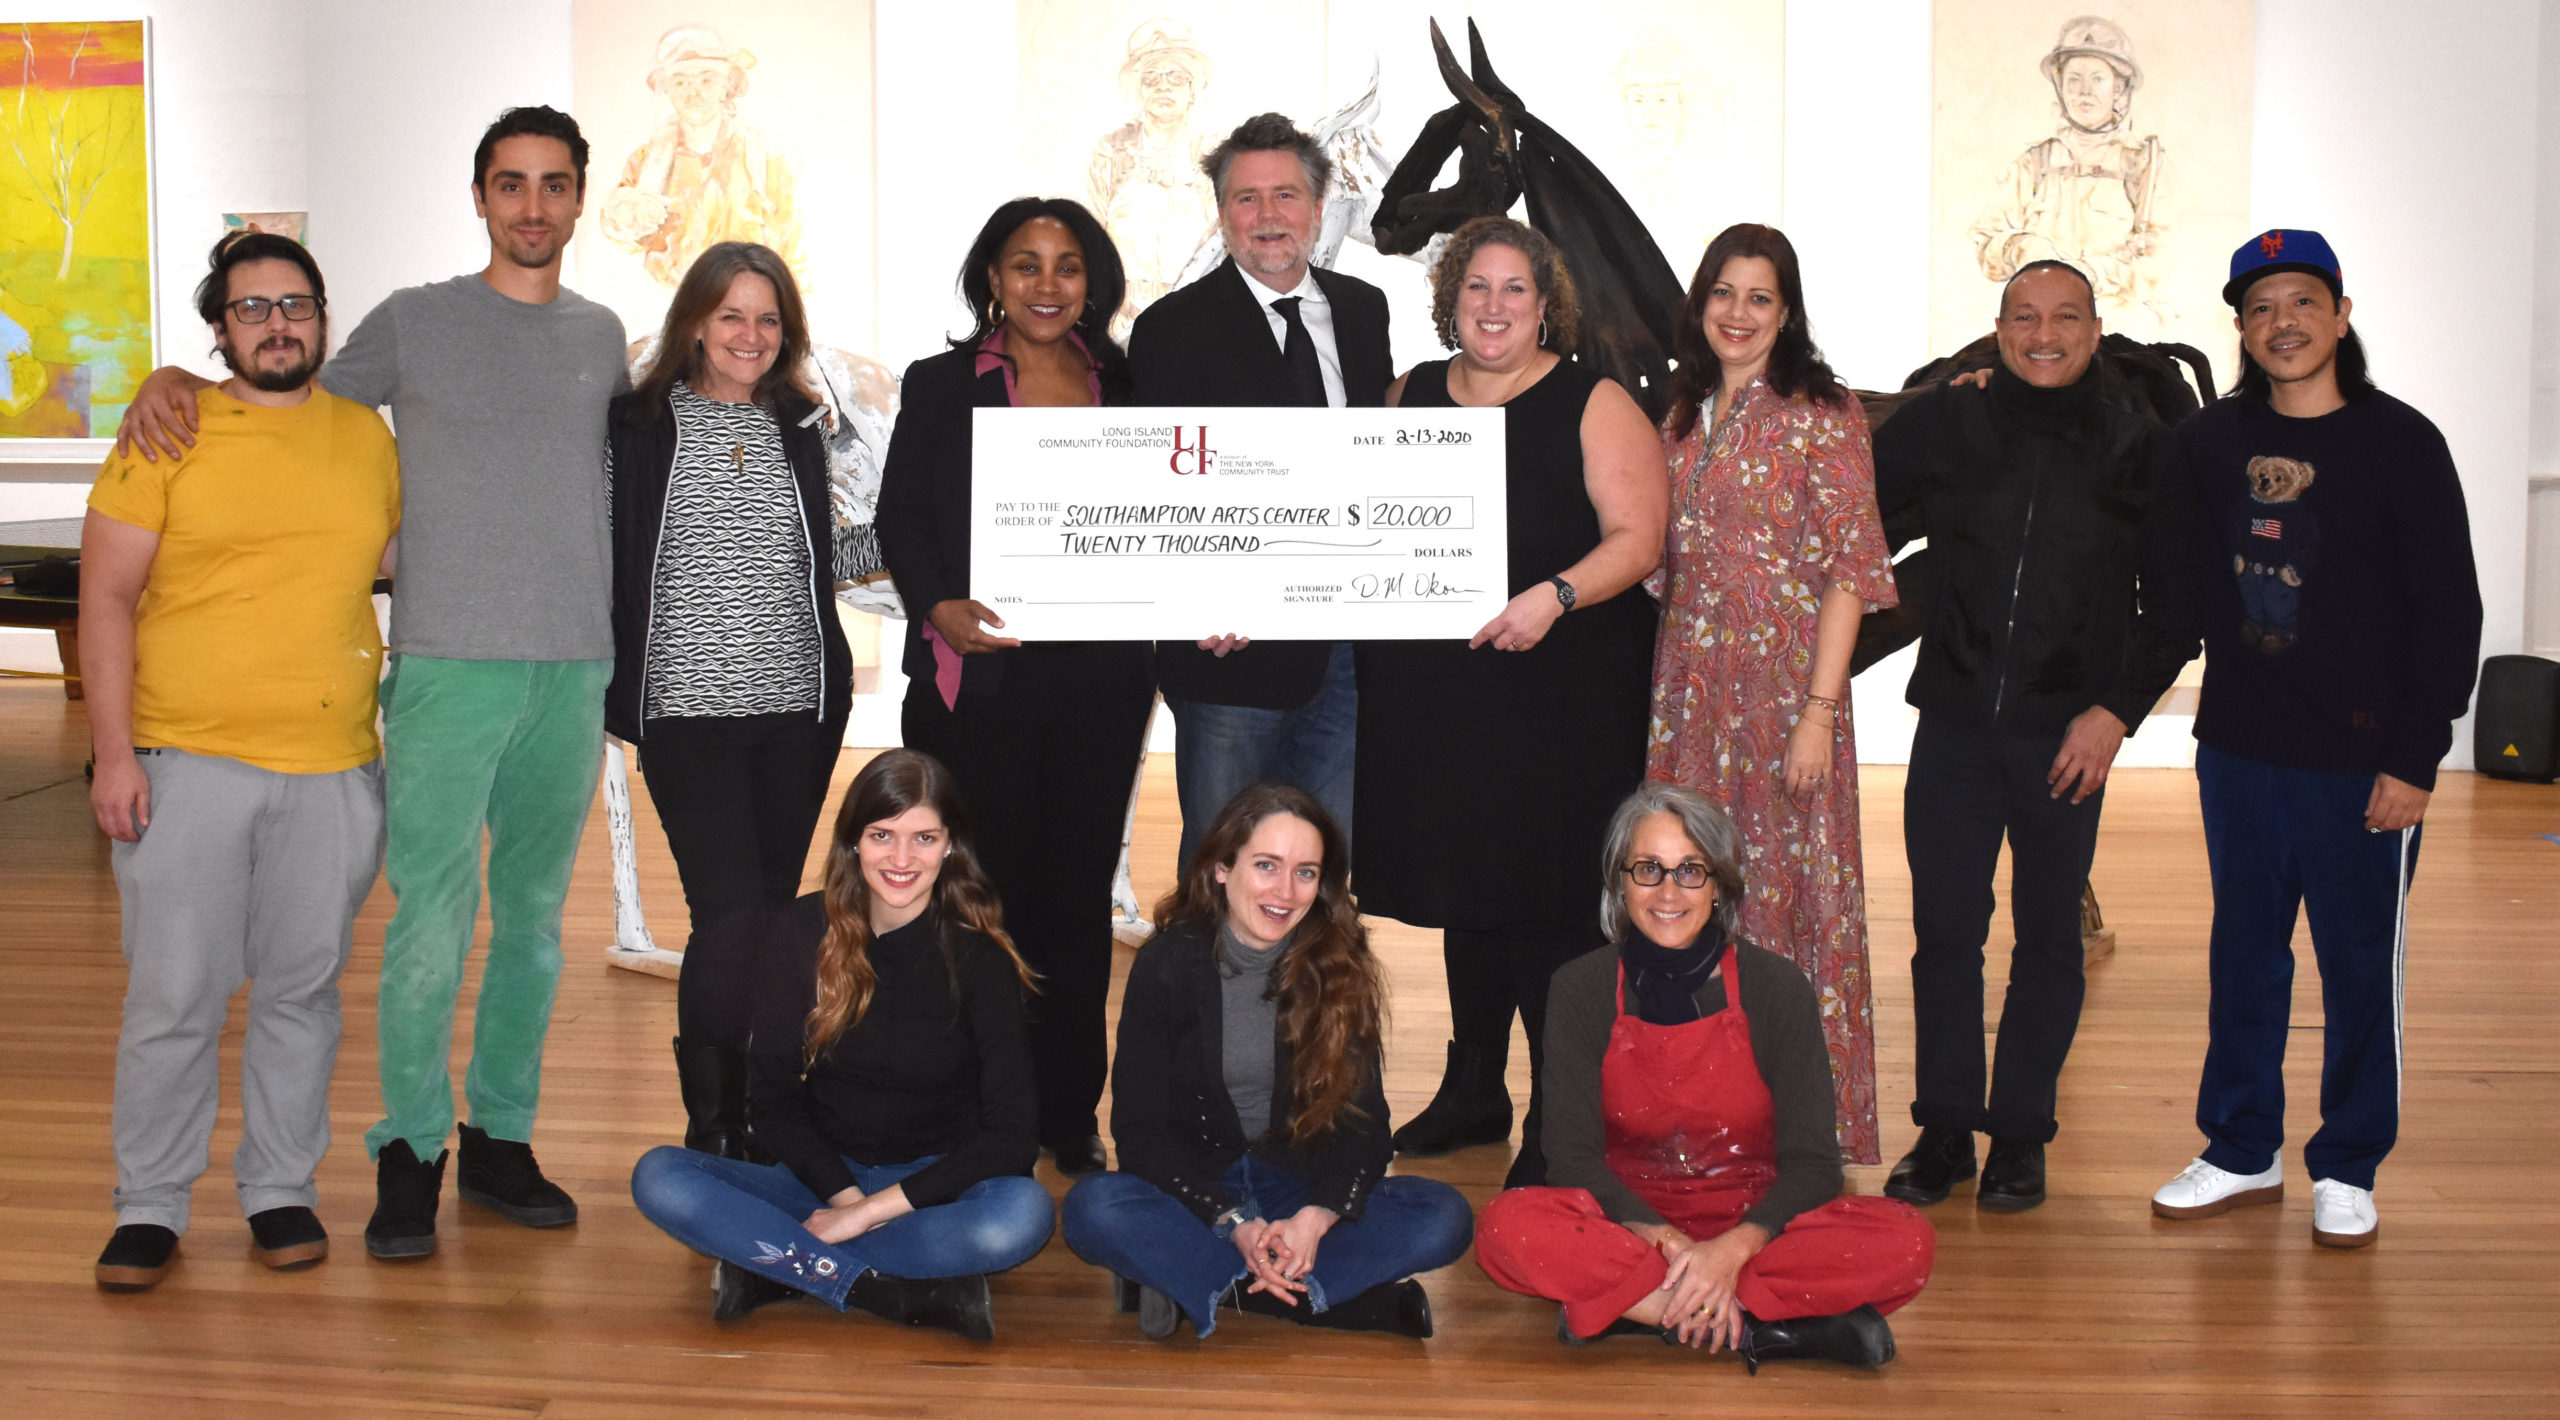 The Long Island Community Foundation recently presented a check for $20,000 to the Southampton Arts Center to support its off-season arts and culture program called TAKEOVER2. Using arts to support downtown rejuvenation during the slow months, SAC presents innovative, interactive, and creative activities and events that are inclusive of Southampton's diverse community.